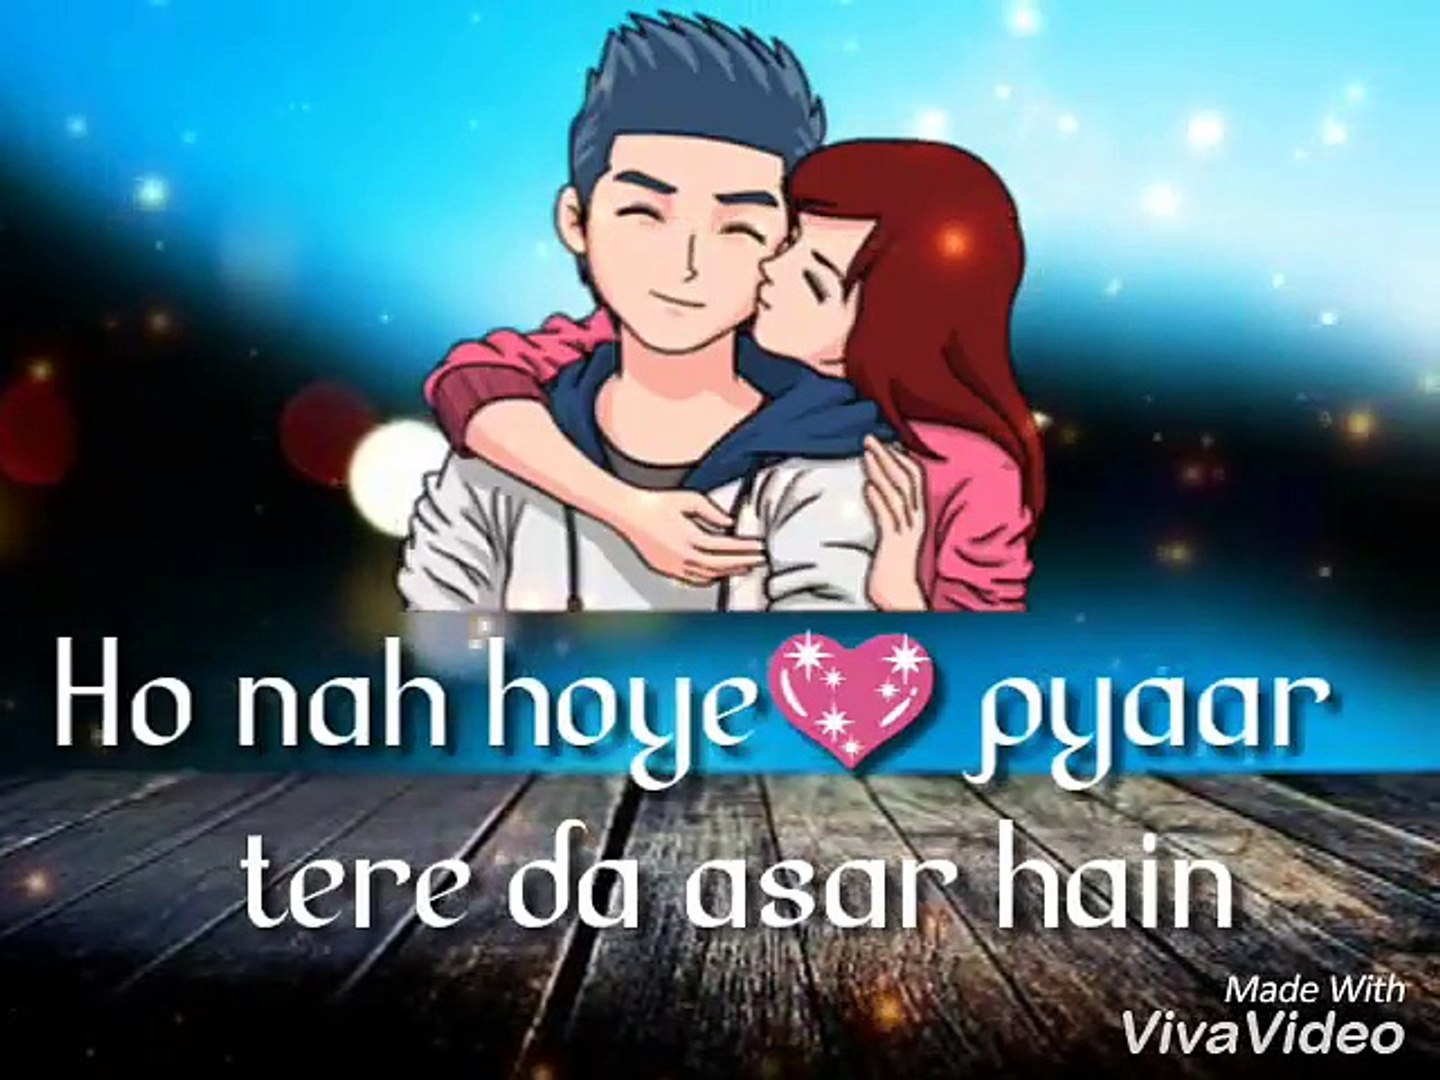 Pyaar Tere Da Asaar Latest Whatsapp Status Video